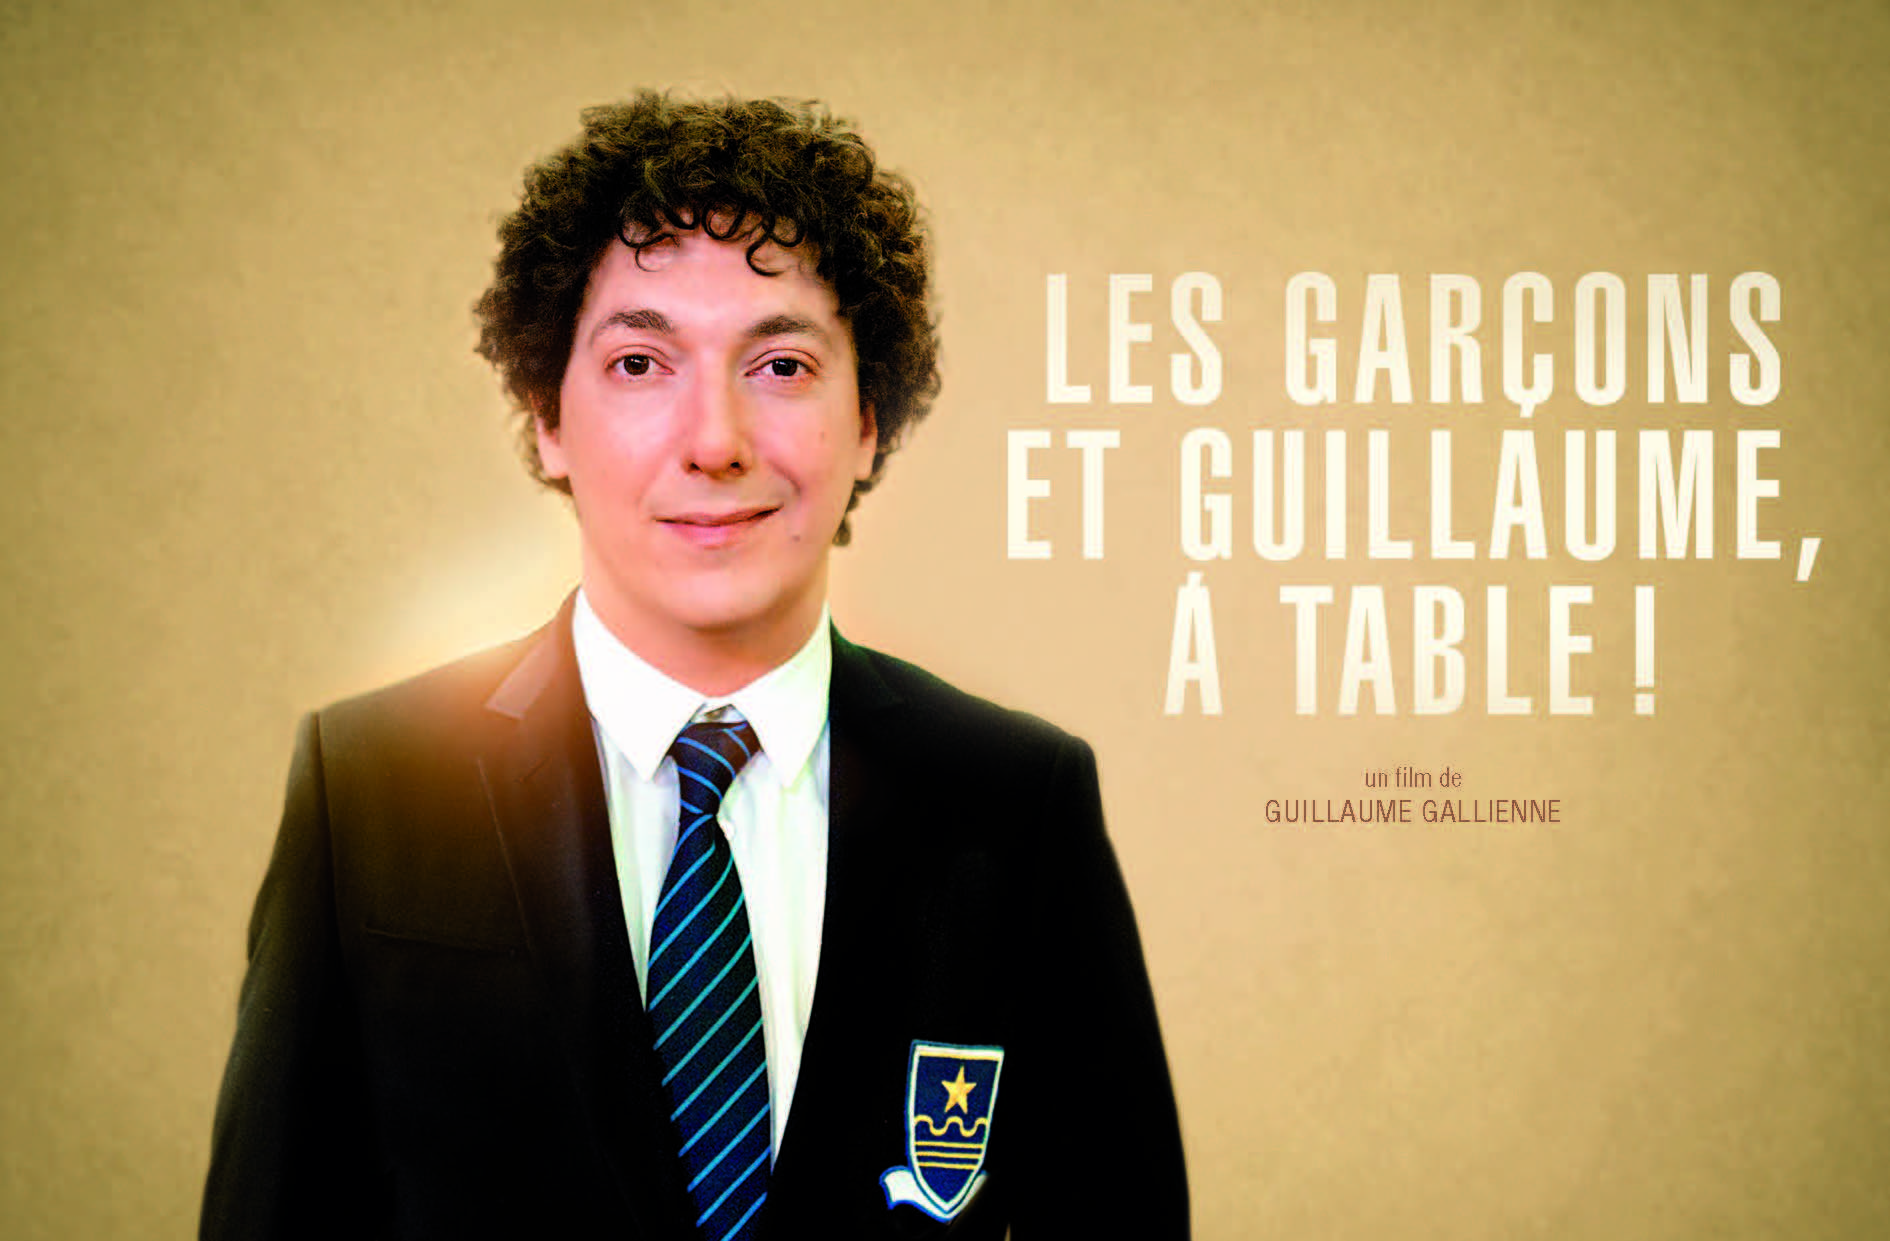 http://leboxofficepourlesnuls.files.wordpress.com/2013/11/les-garcc3b4ns-et-guillaume-a-table.jpg